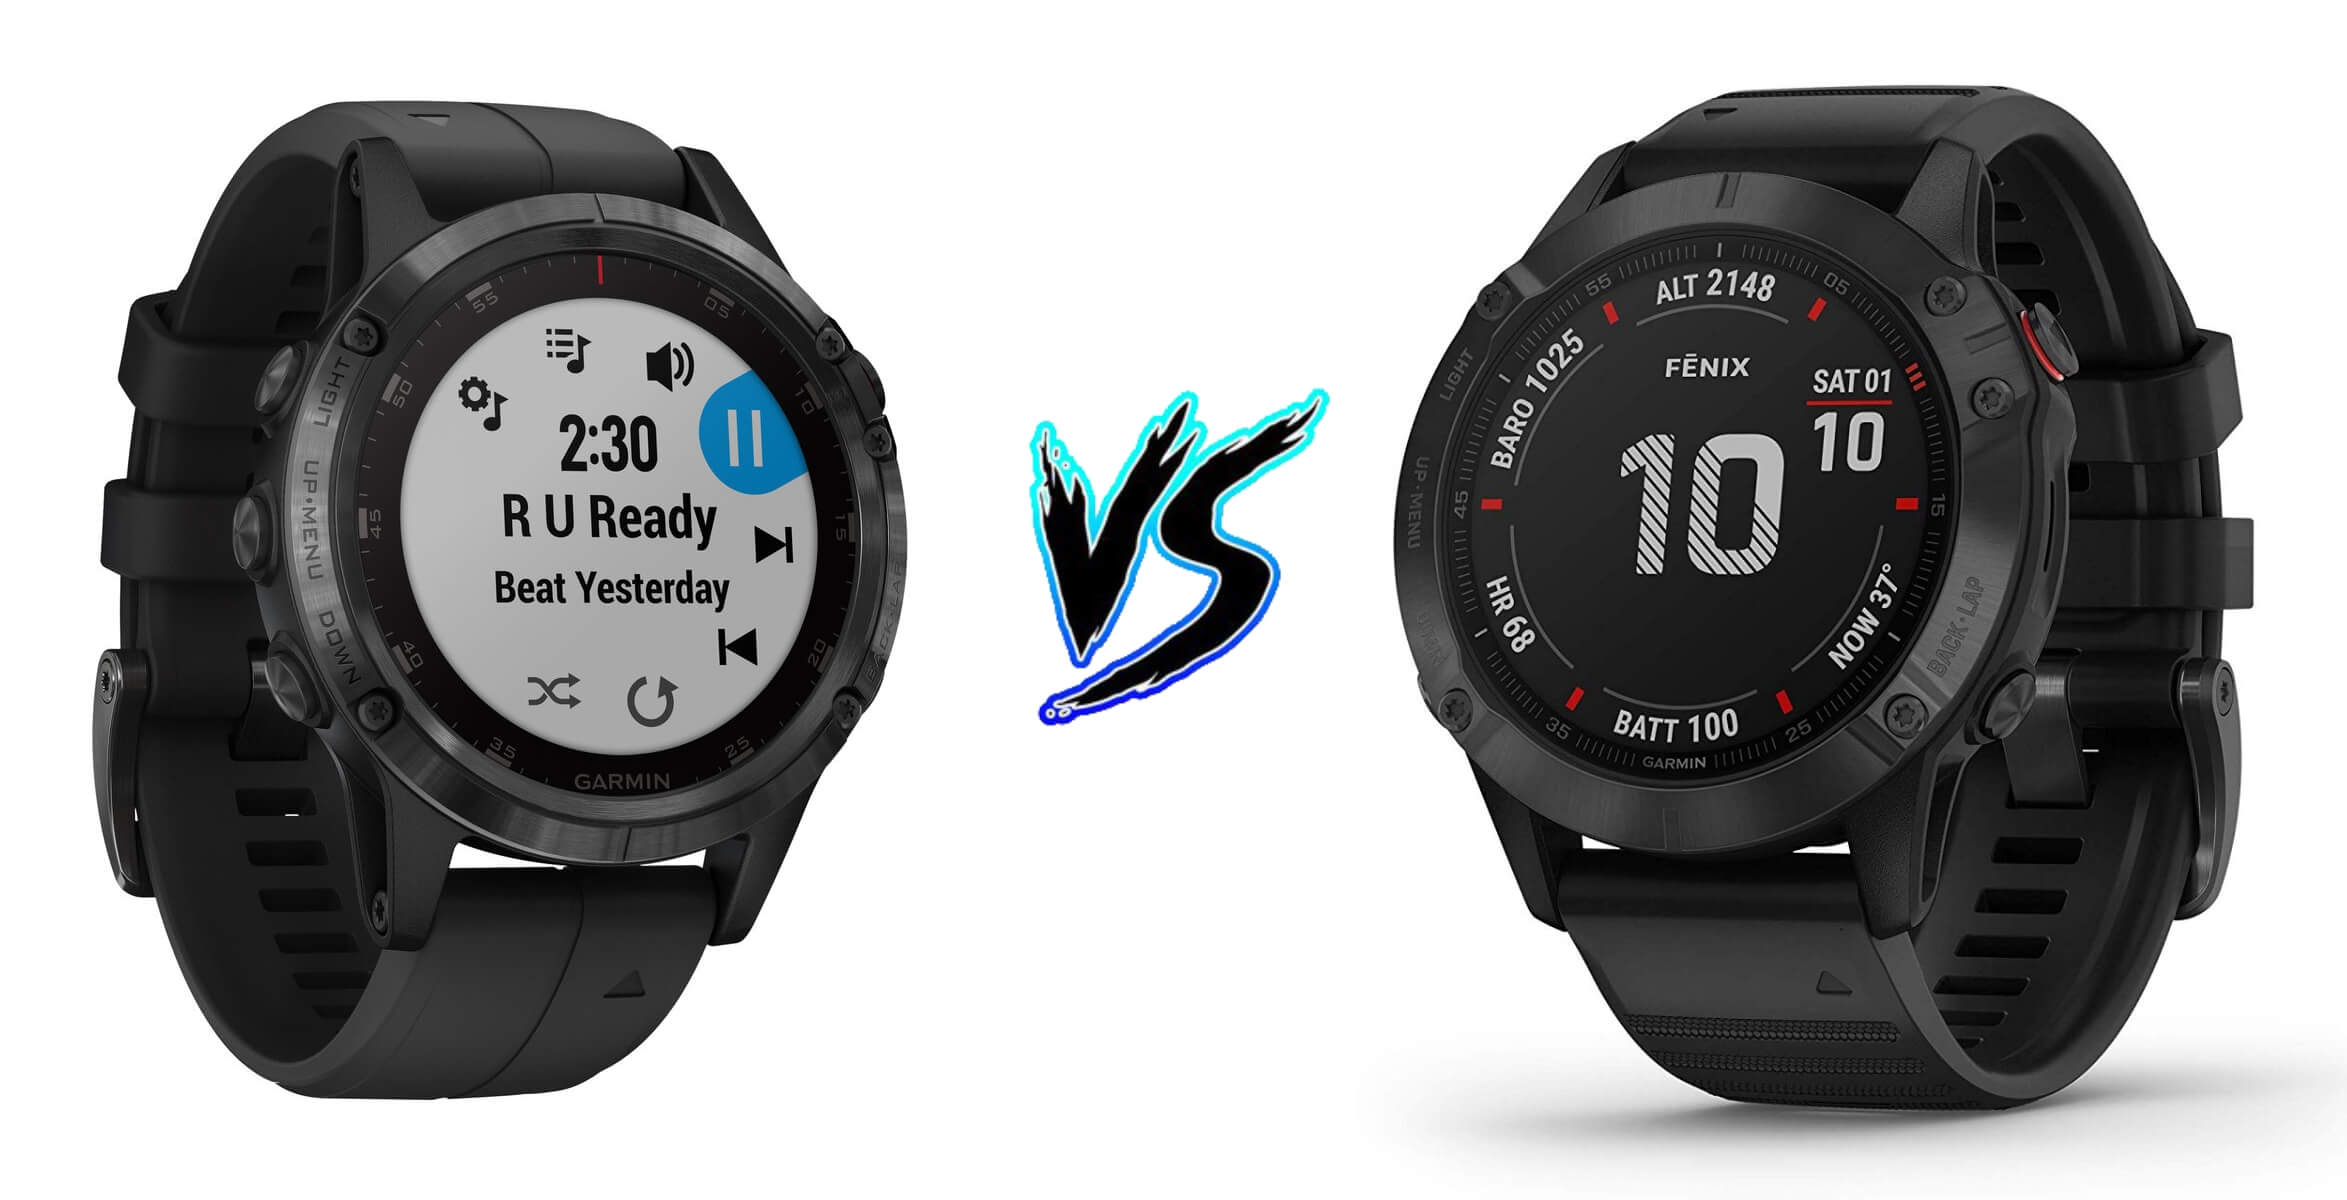 Garmin Fenix 5 Plus vs Garmin Fenix 6 Pro – Product Comparison